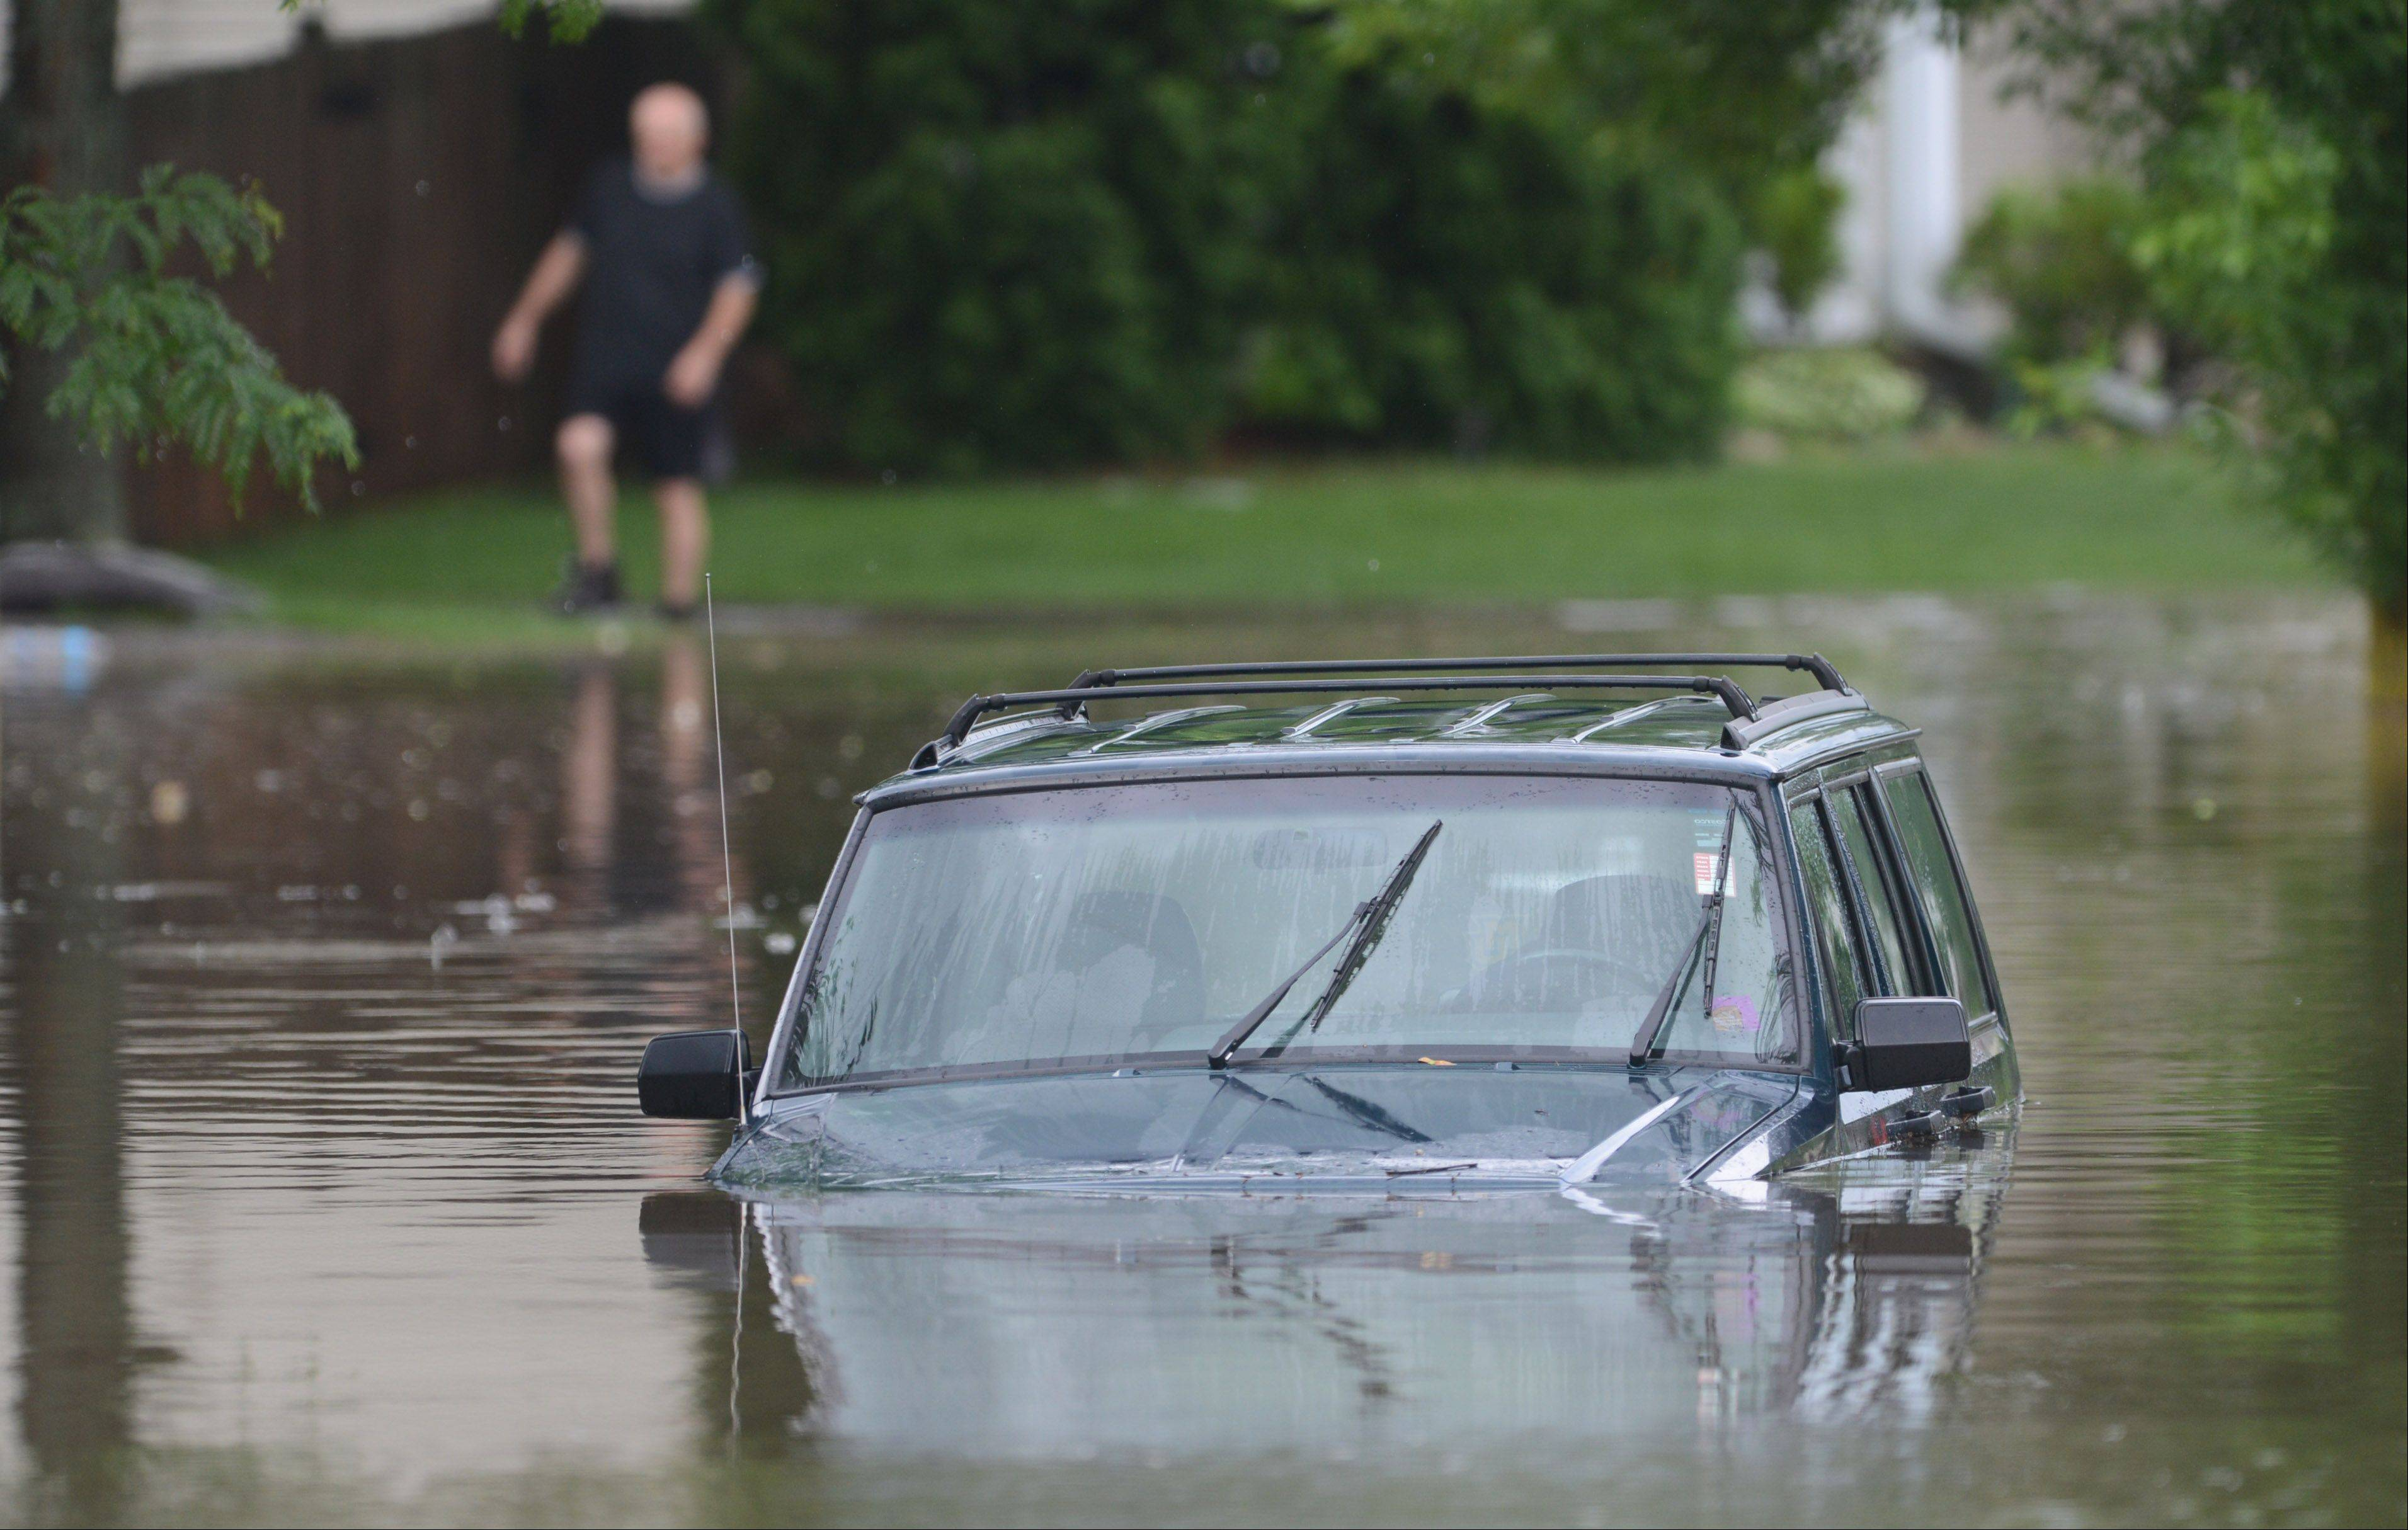 A car is submerged under water along Bristol Trail Road in Lake Zurich as heavy rains hit the area Wednesday morning.